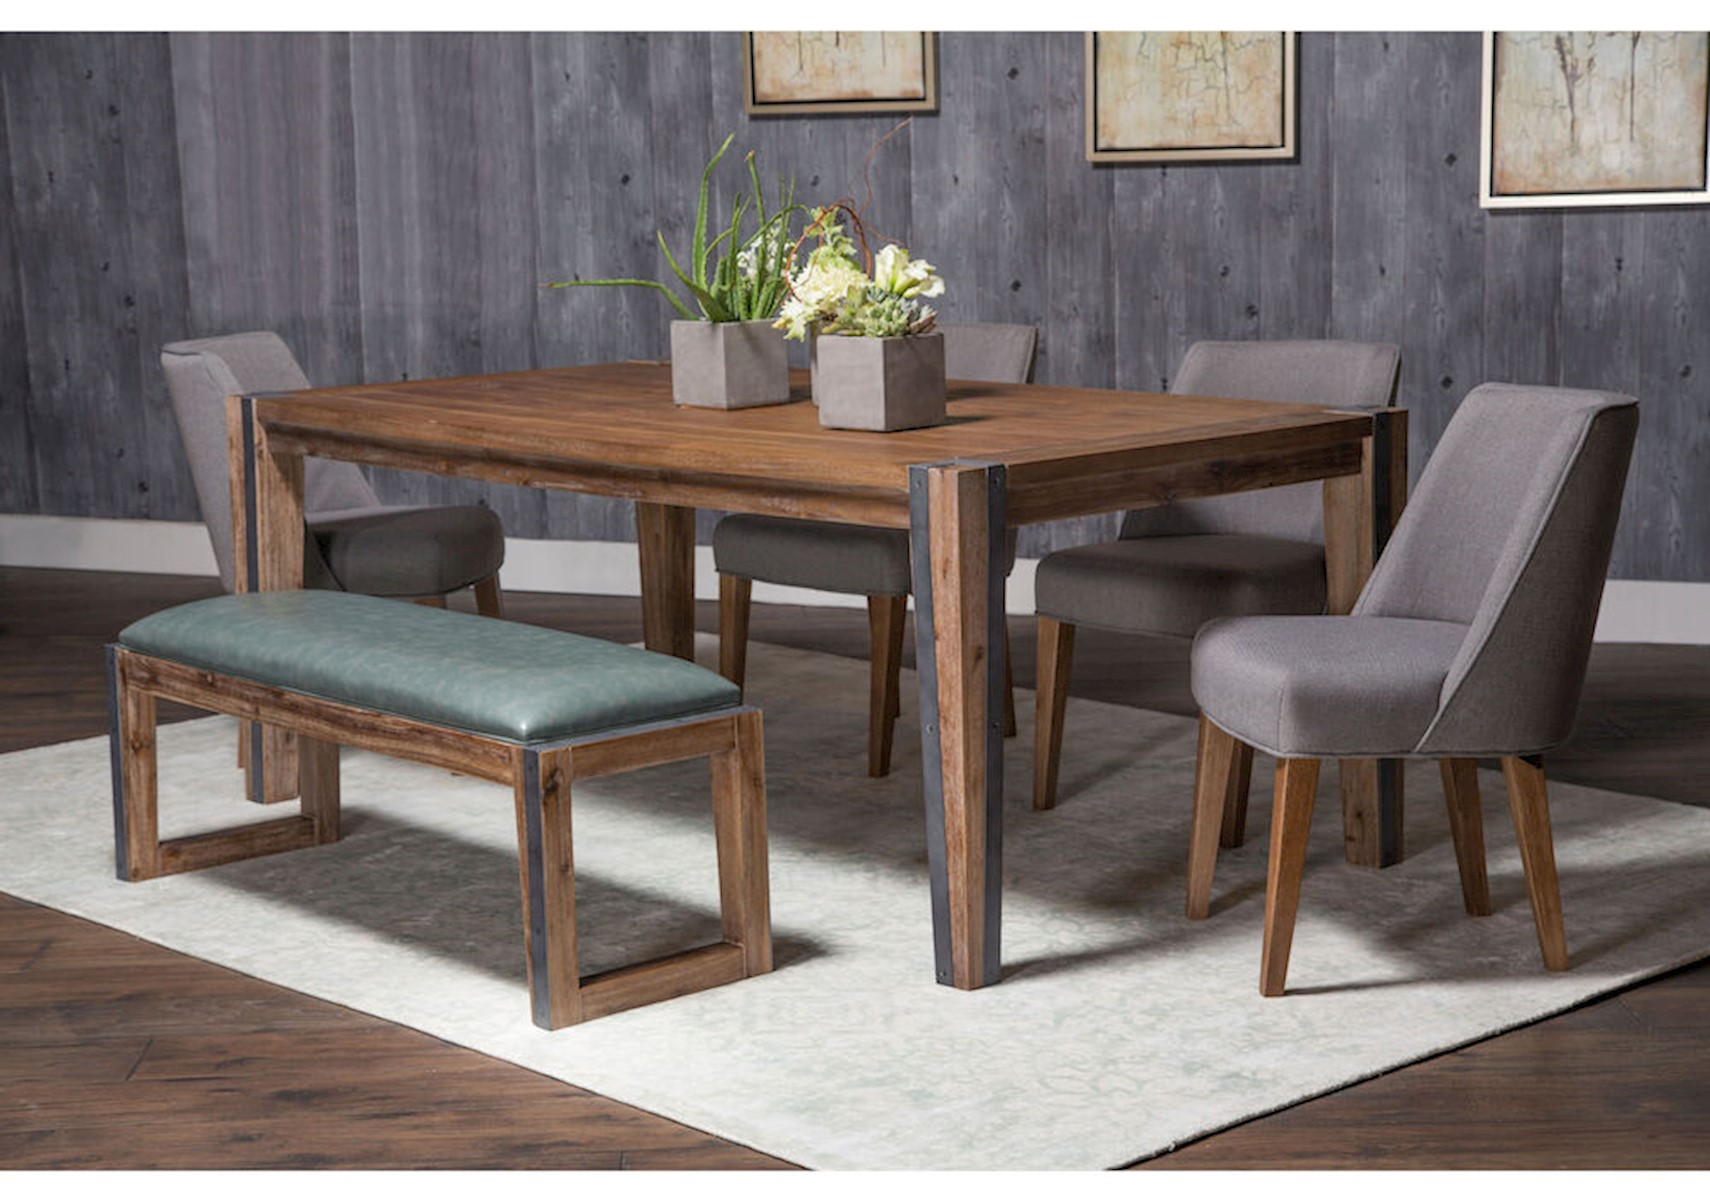 Brooklyn Walk 6 Pc Dining Room Set